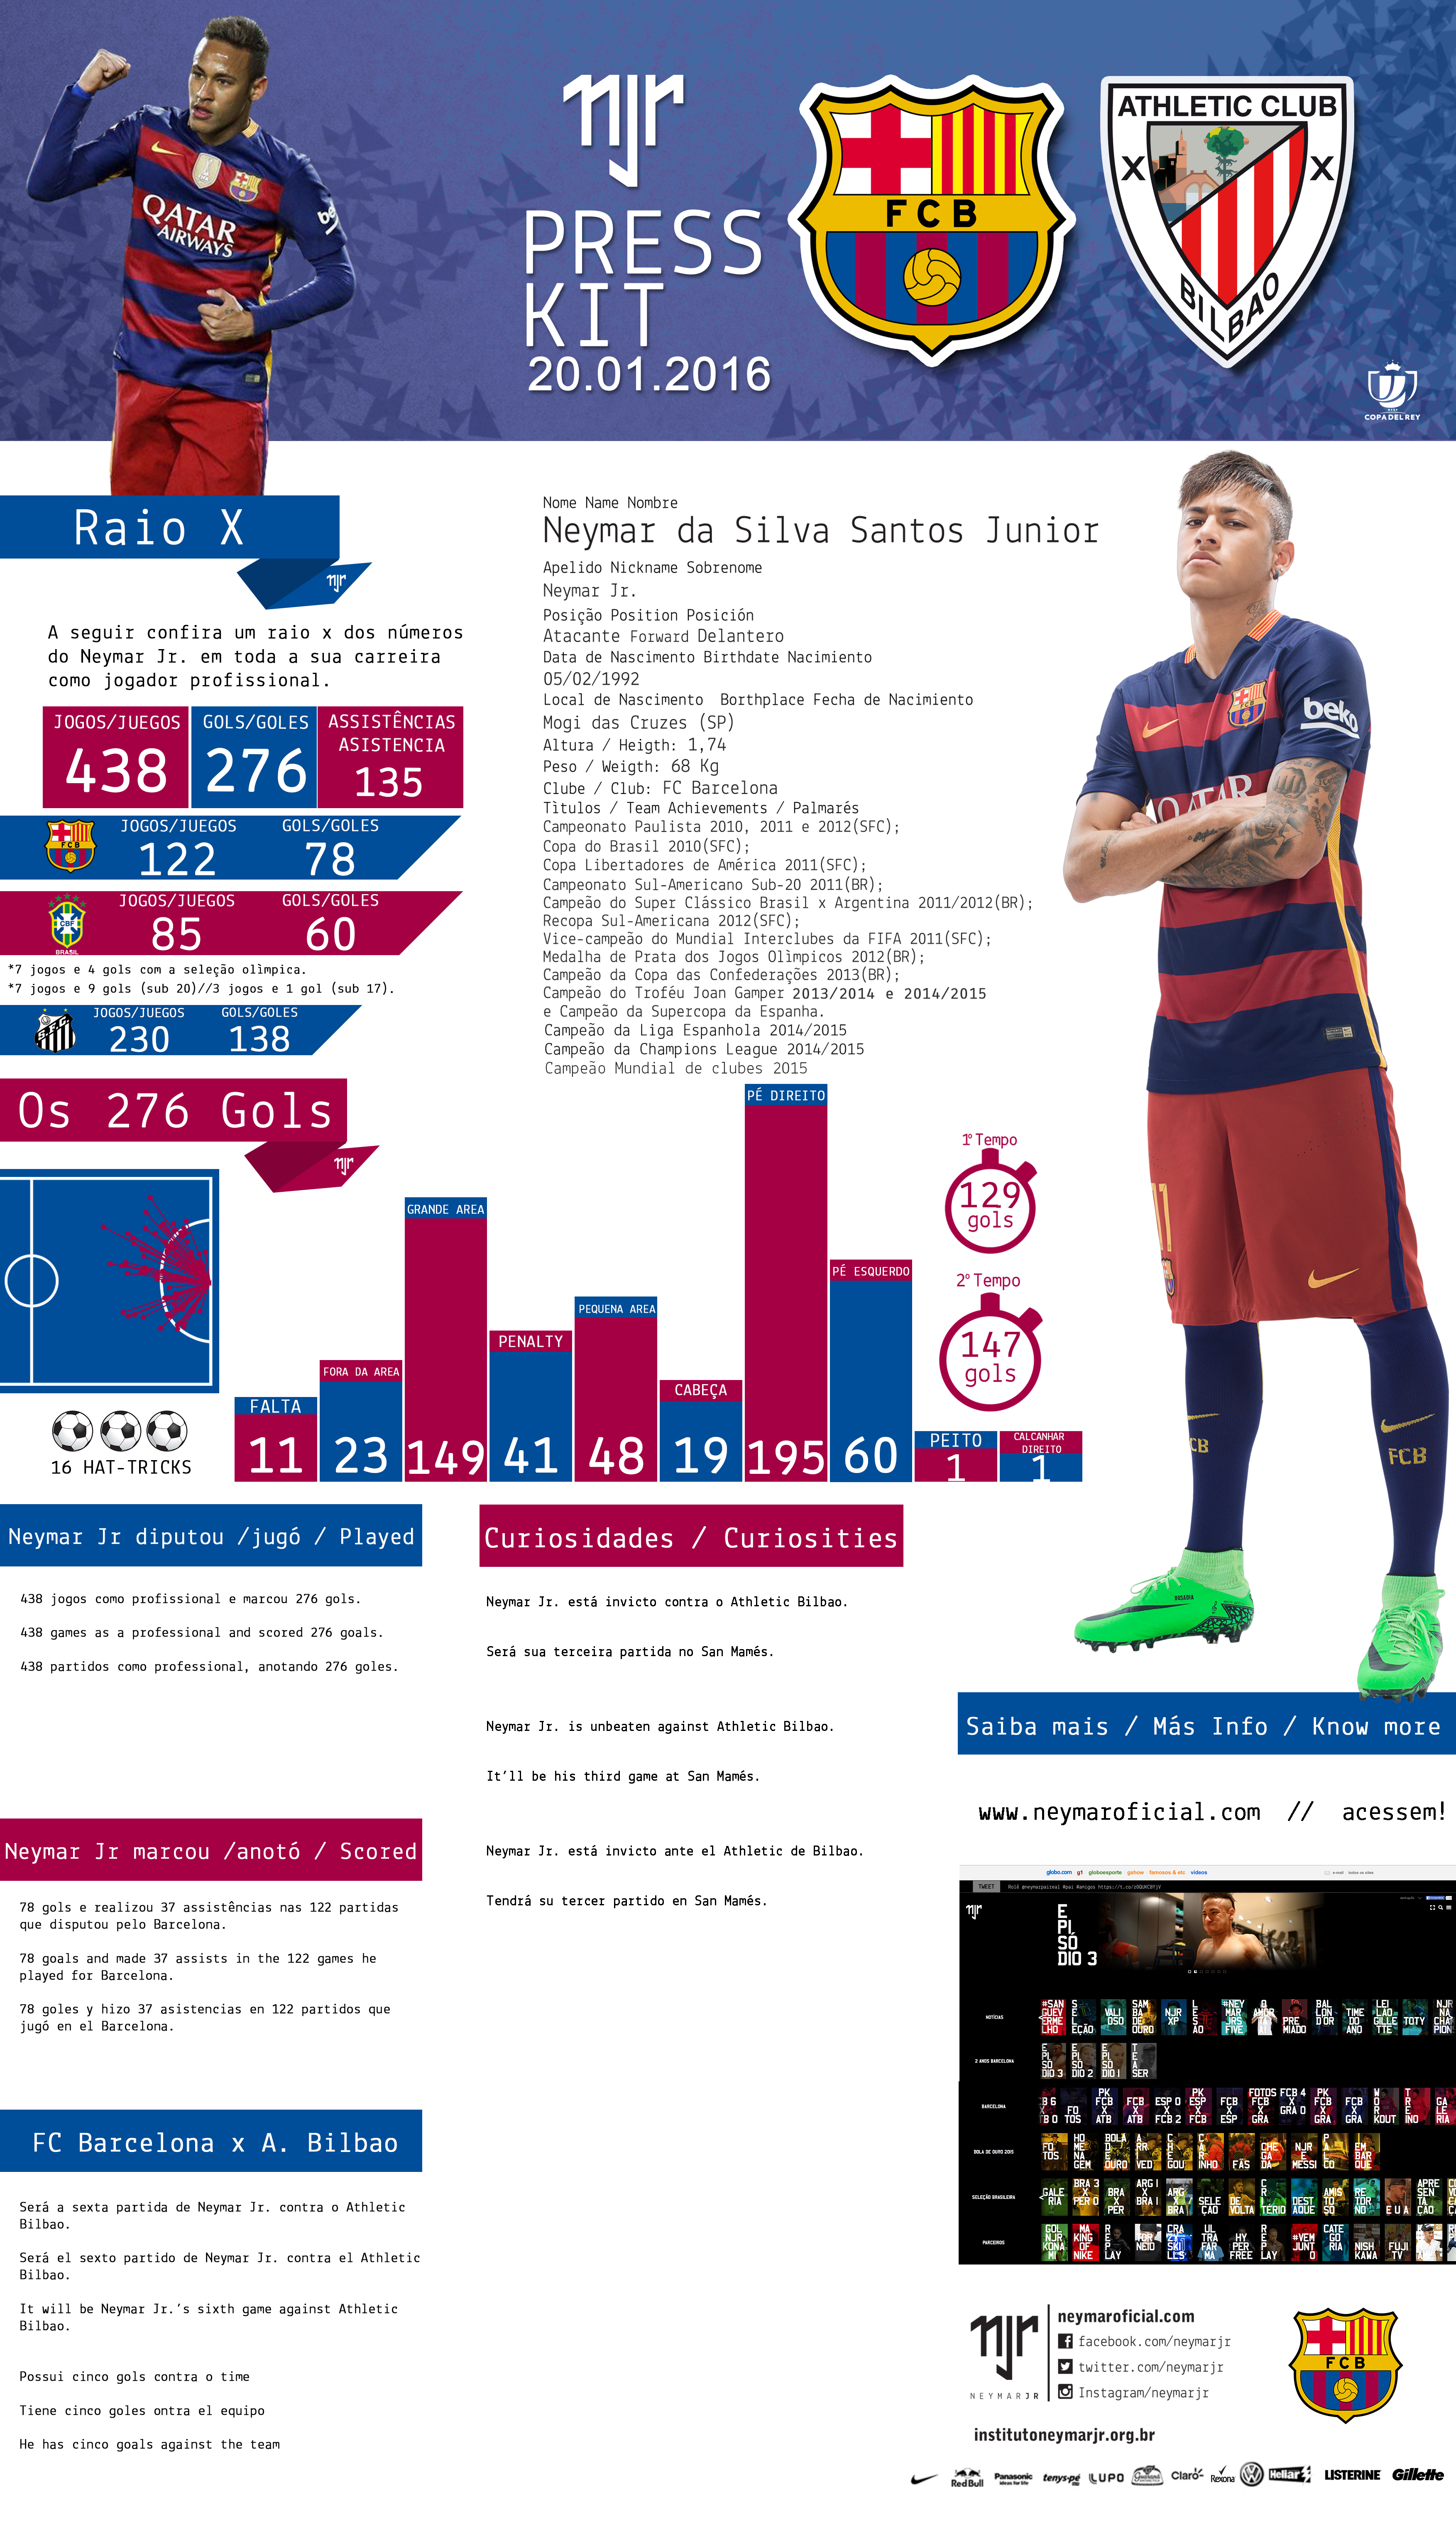 8ee3466de4 Press Kit - Neymar Jr - Atlético de Bilbao x FC Barcelona - Copa do Rei